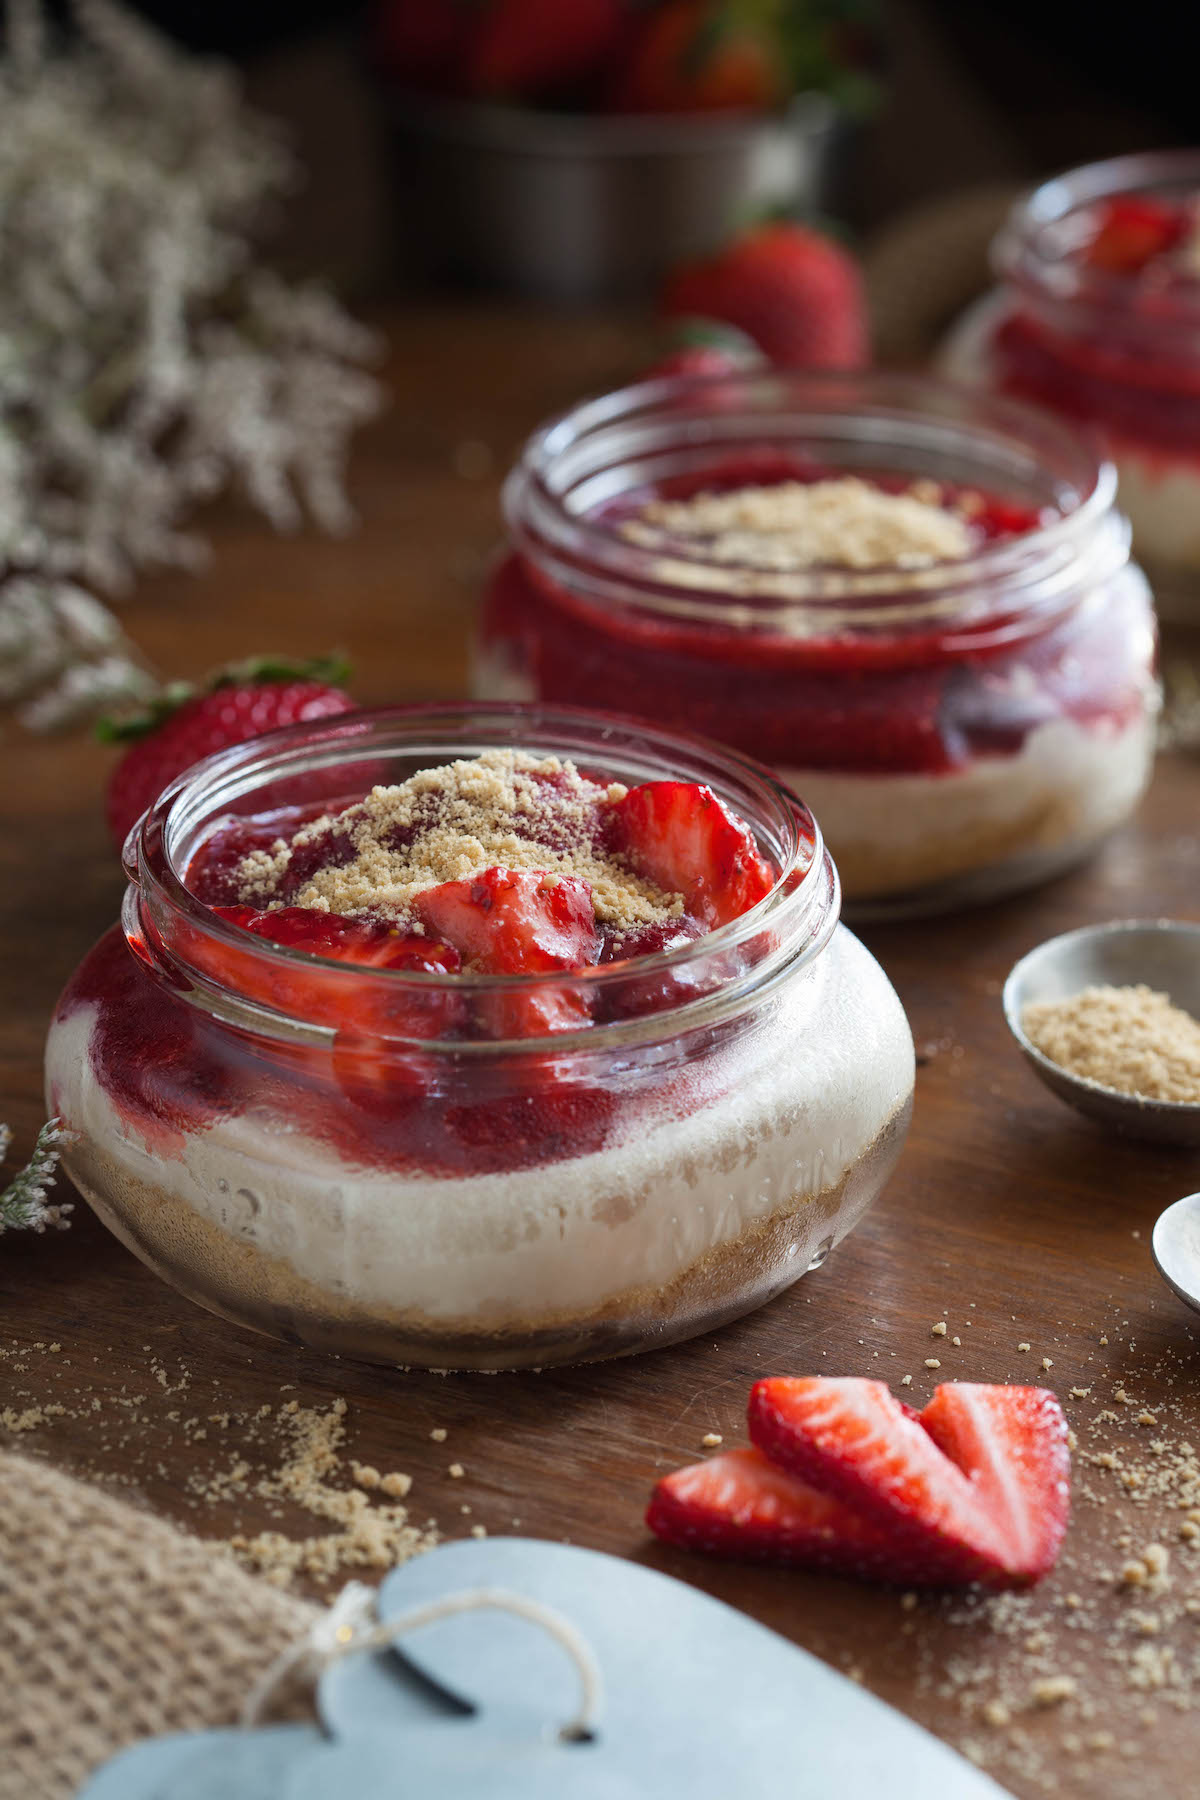 No Bake Strawberry Cheesecake Jars Clean Eating With A